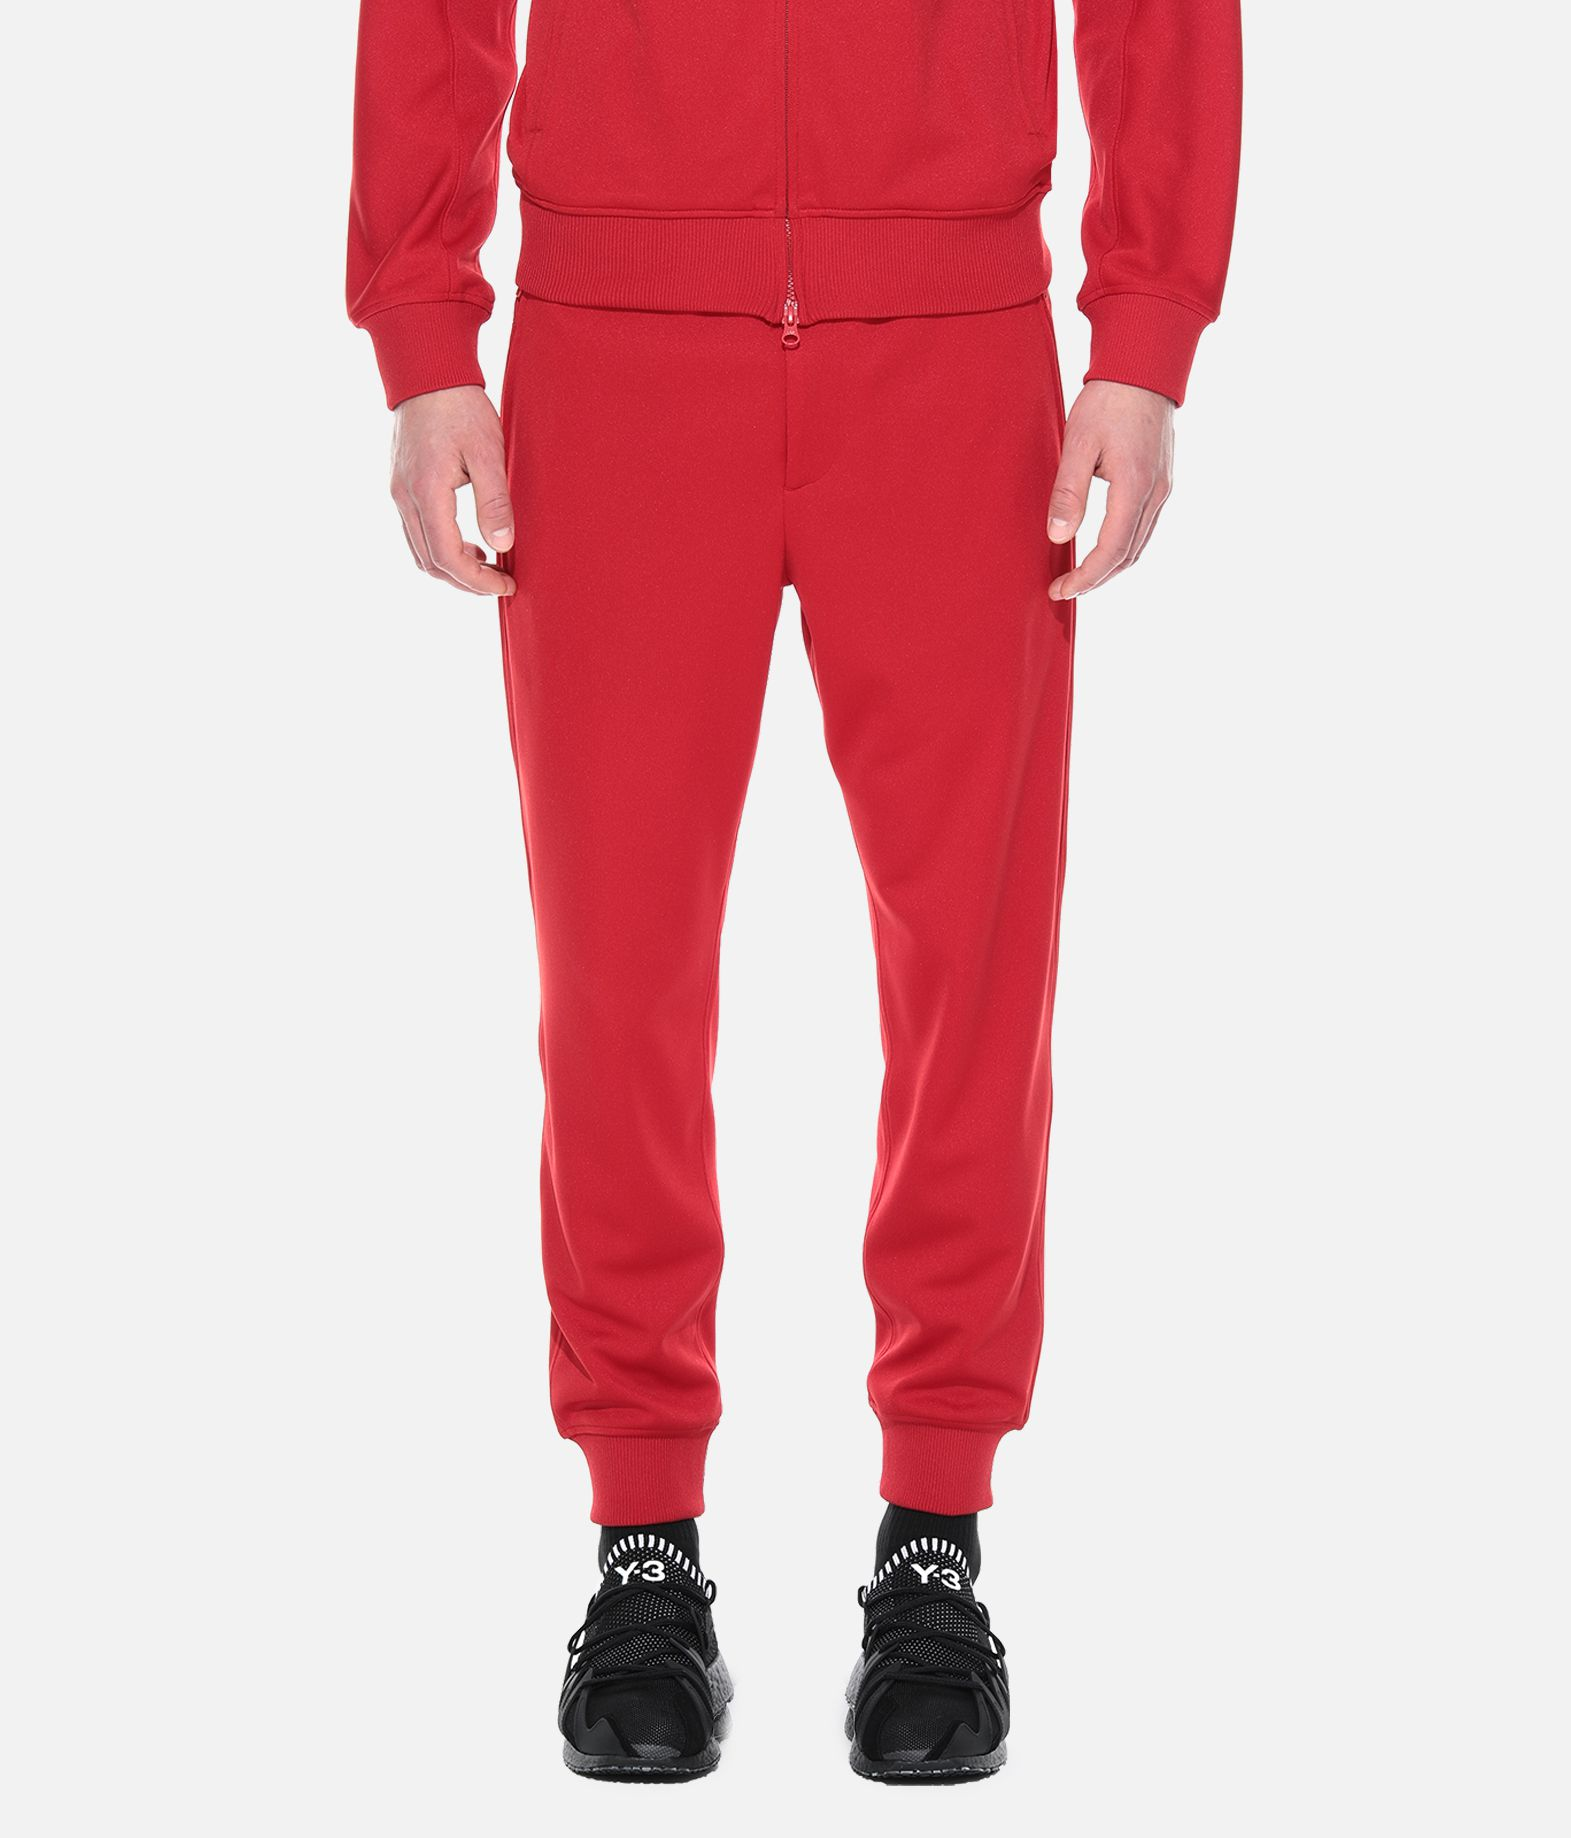 Y-3 Y-3 Classic Track Pants Track pant Man r